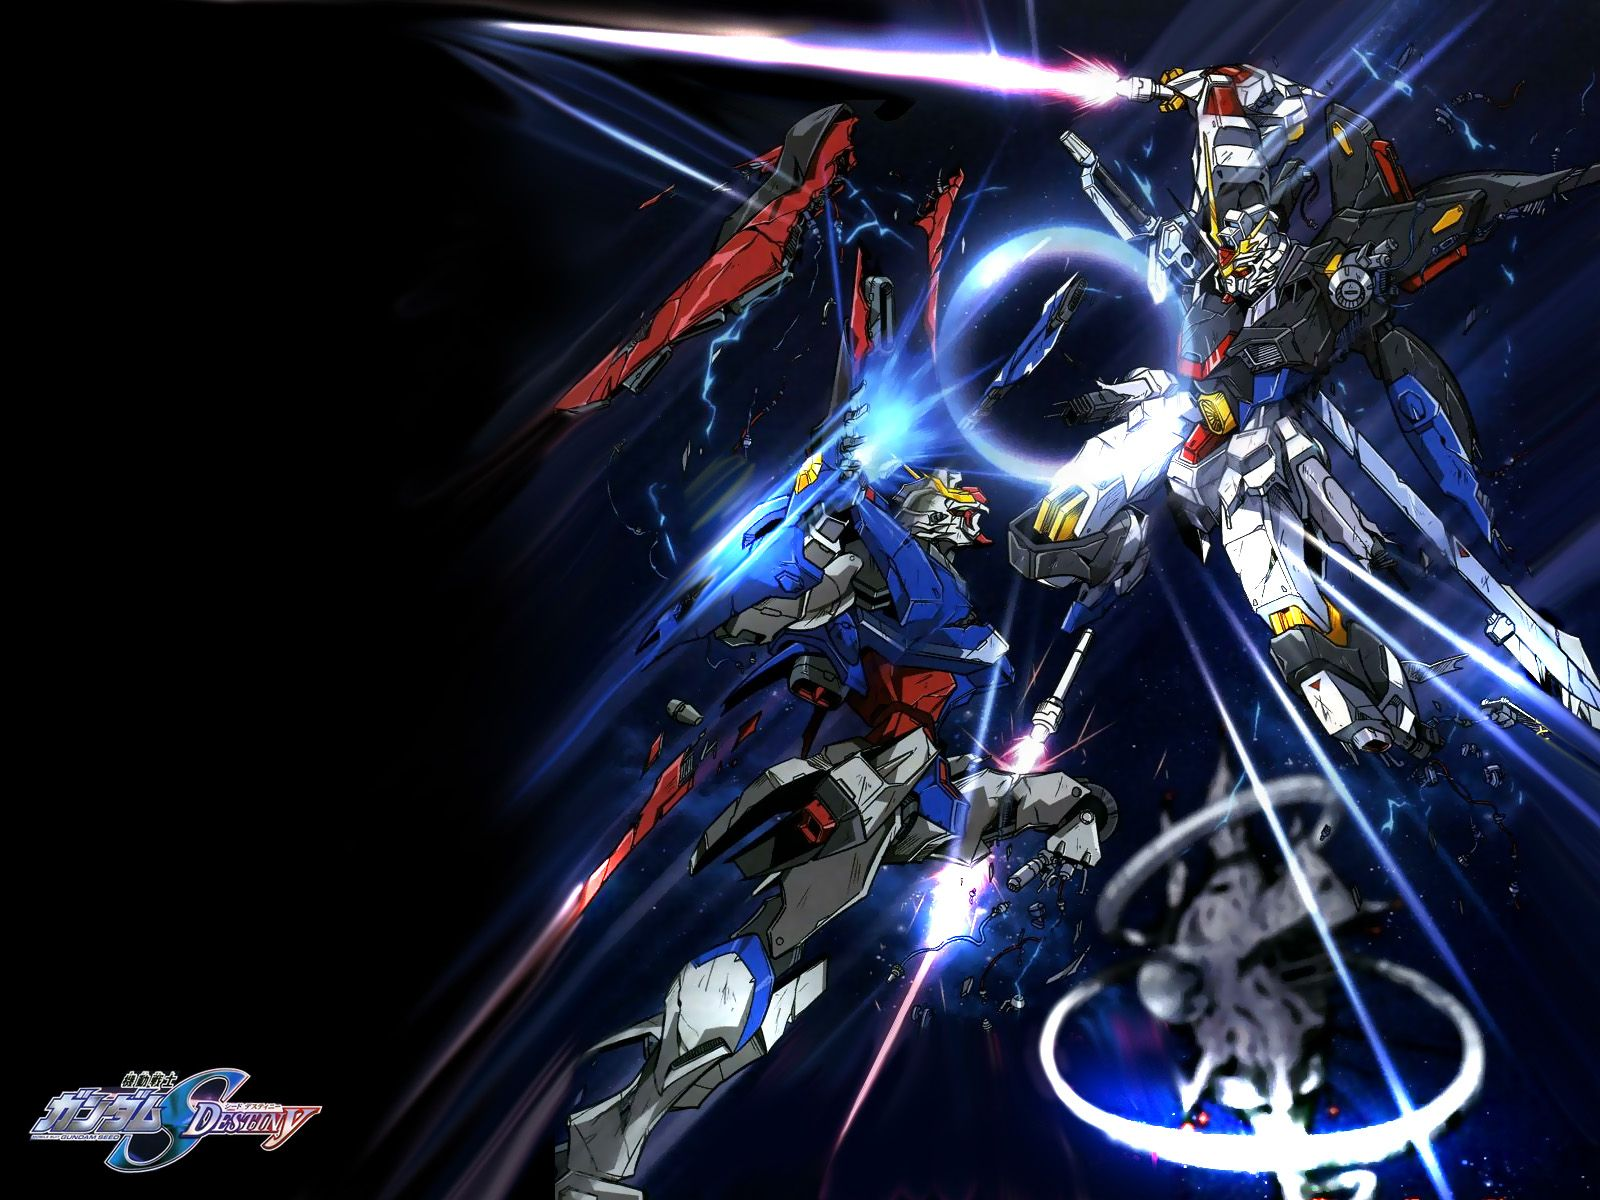 1600x1200 - Mobile Suit Gundam Seed Destiny Wallpapers 31